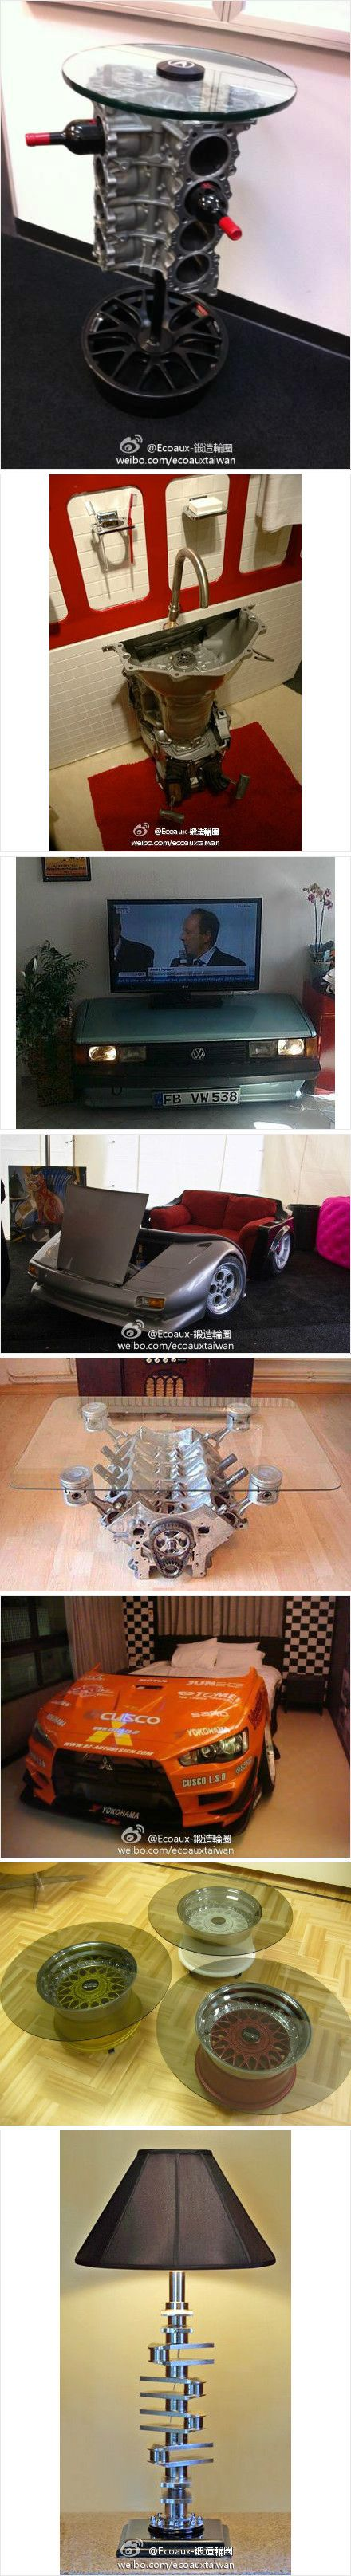 interesting new ways to use old car parts http://www.duitang.com/people/mblog/15914568/detail/